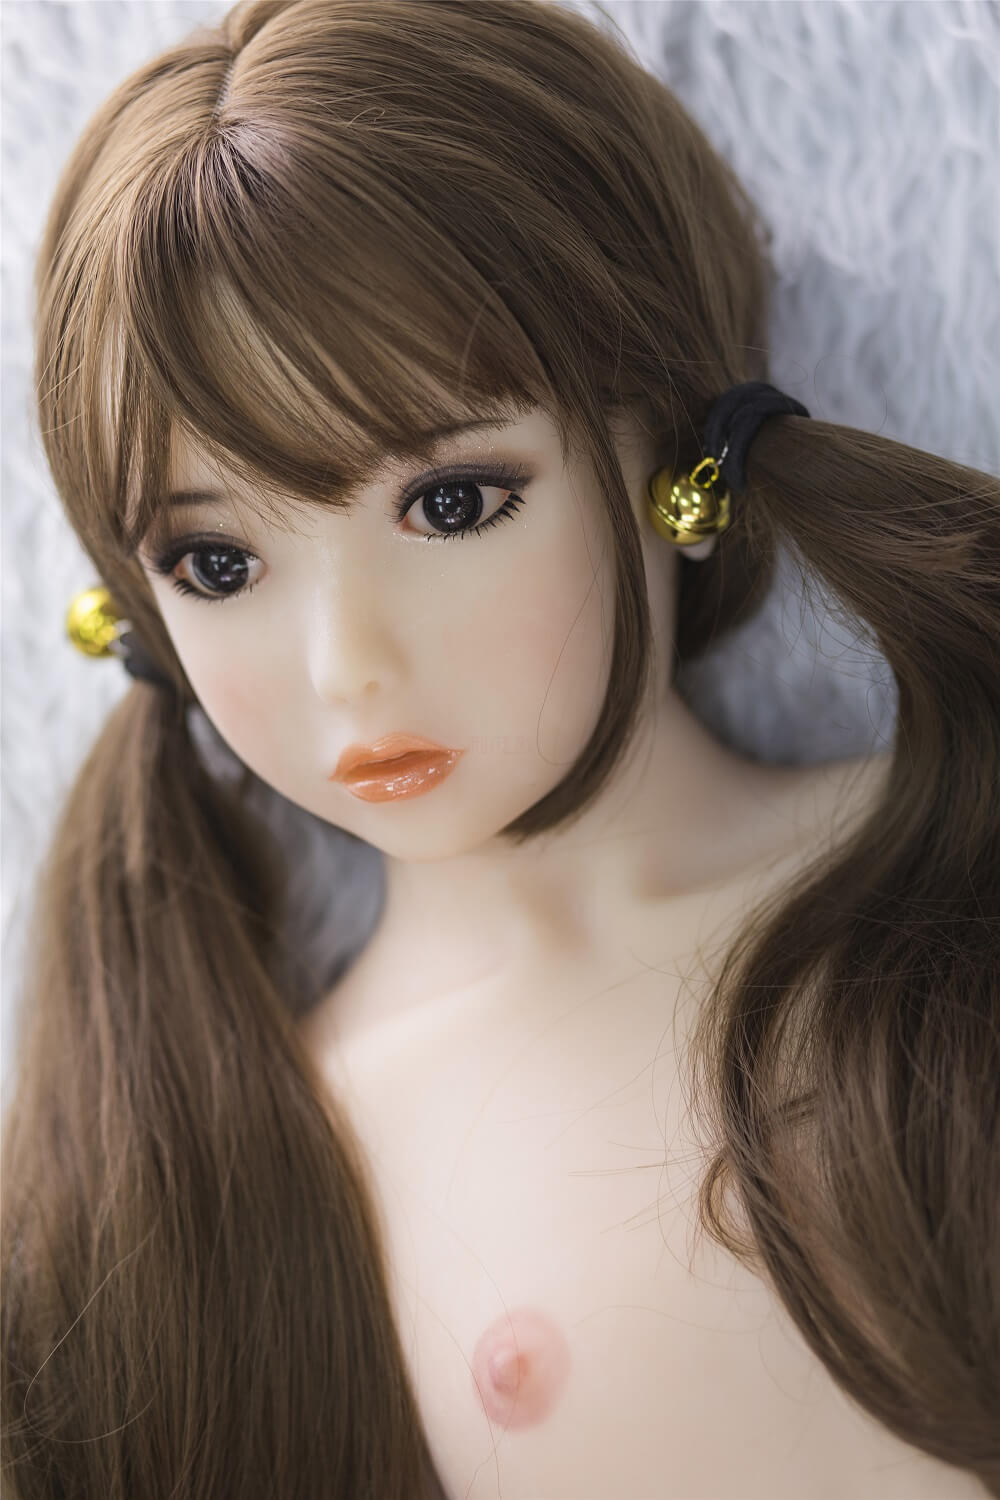 Eve 100cm Mini Sex Doll with Flat Chest Cheap Small Doll for Sex